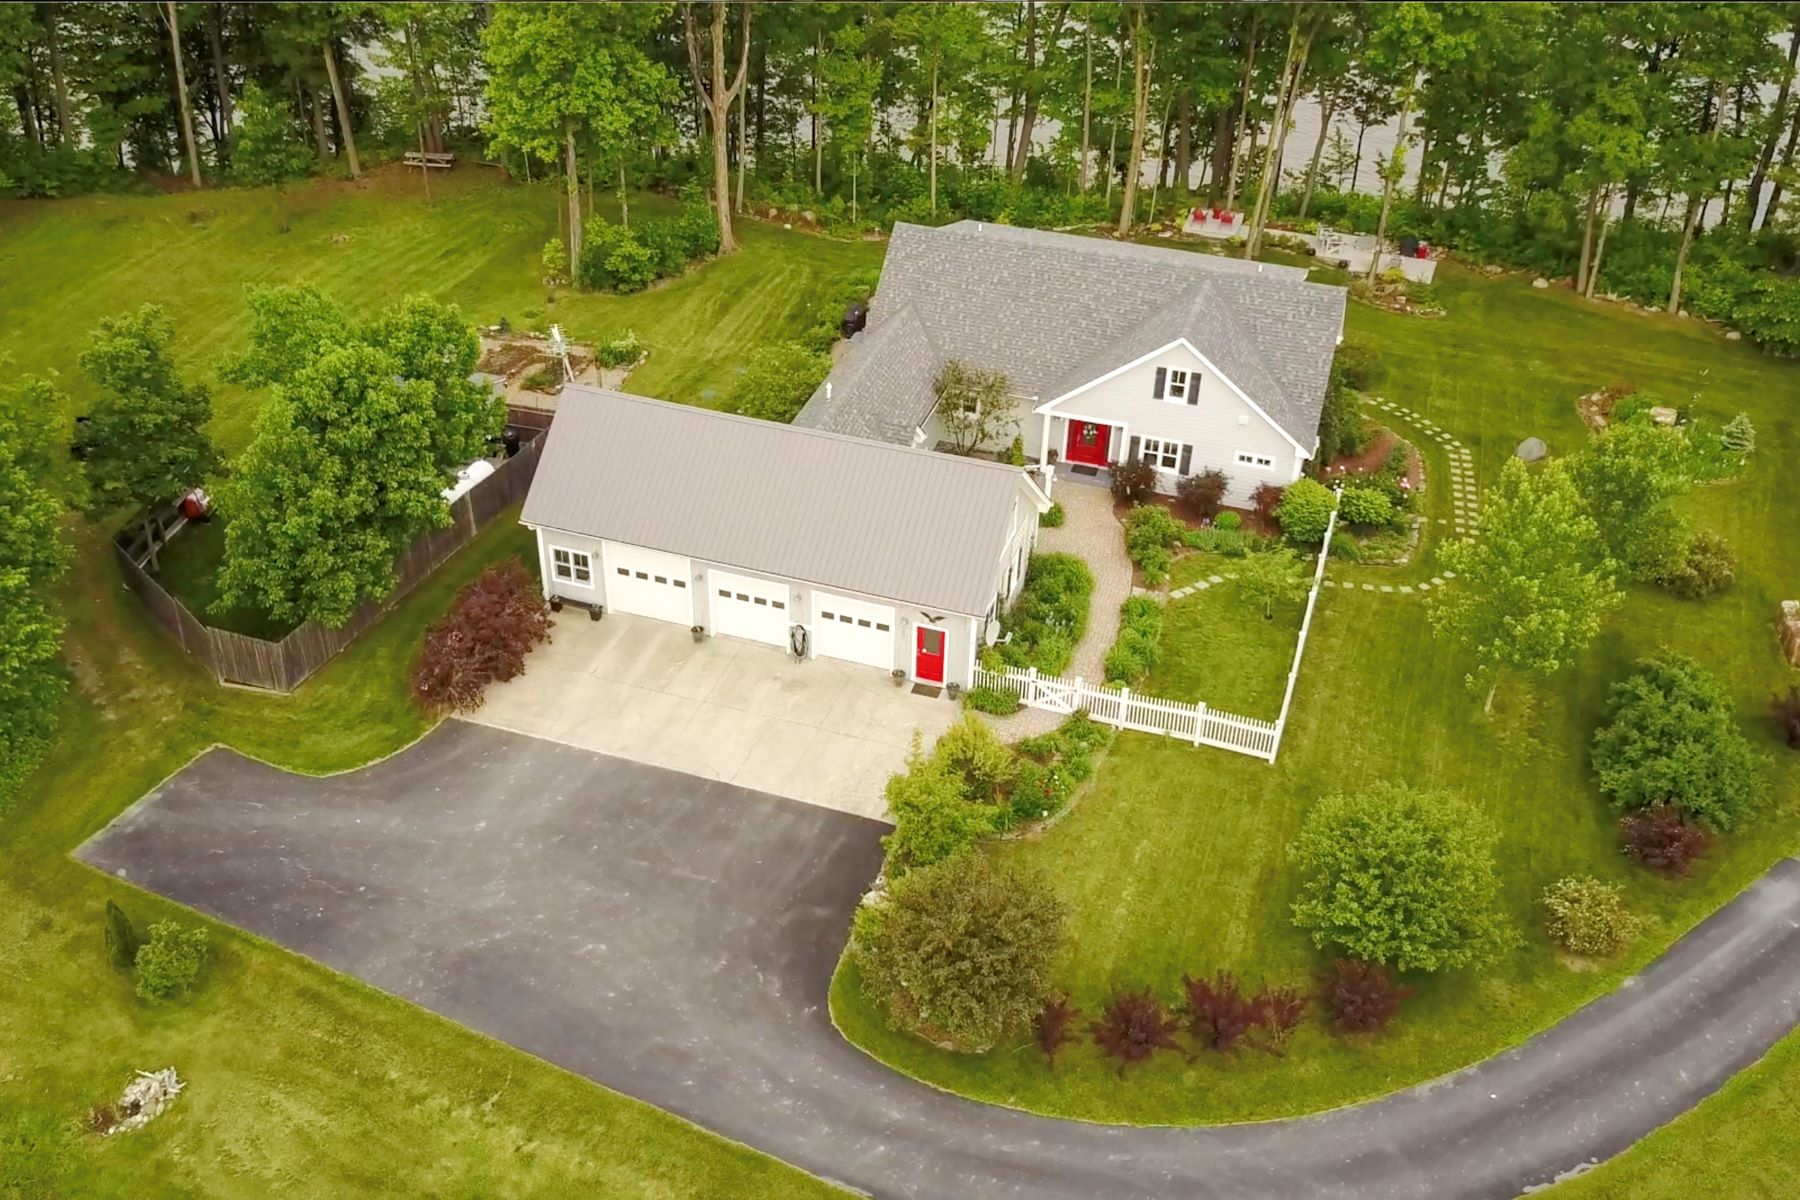 Single Family Homes for Active at Hickory Ridge 500 Bridge Rd Crown Point, New York 12928 United States